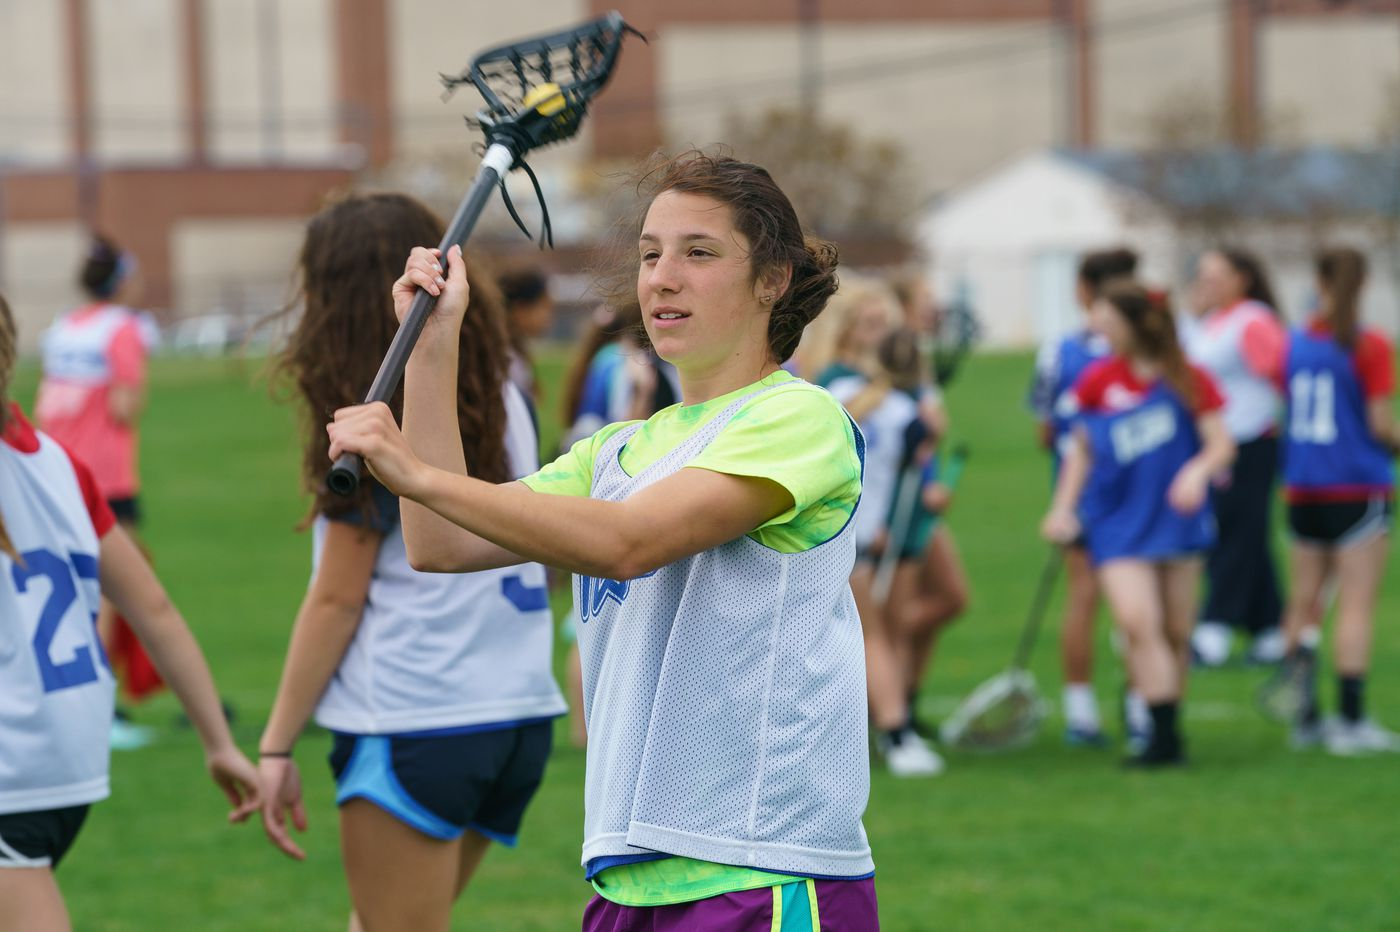 Lacrosse is the family tie that binds Washington Township's Erin Renshaw and her aunt, West Deptford coach Julie Catrambone